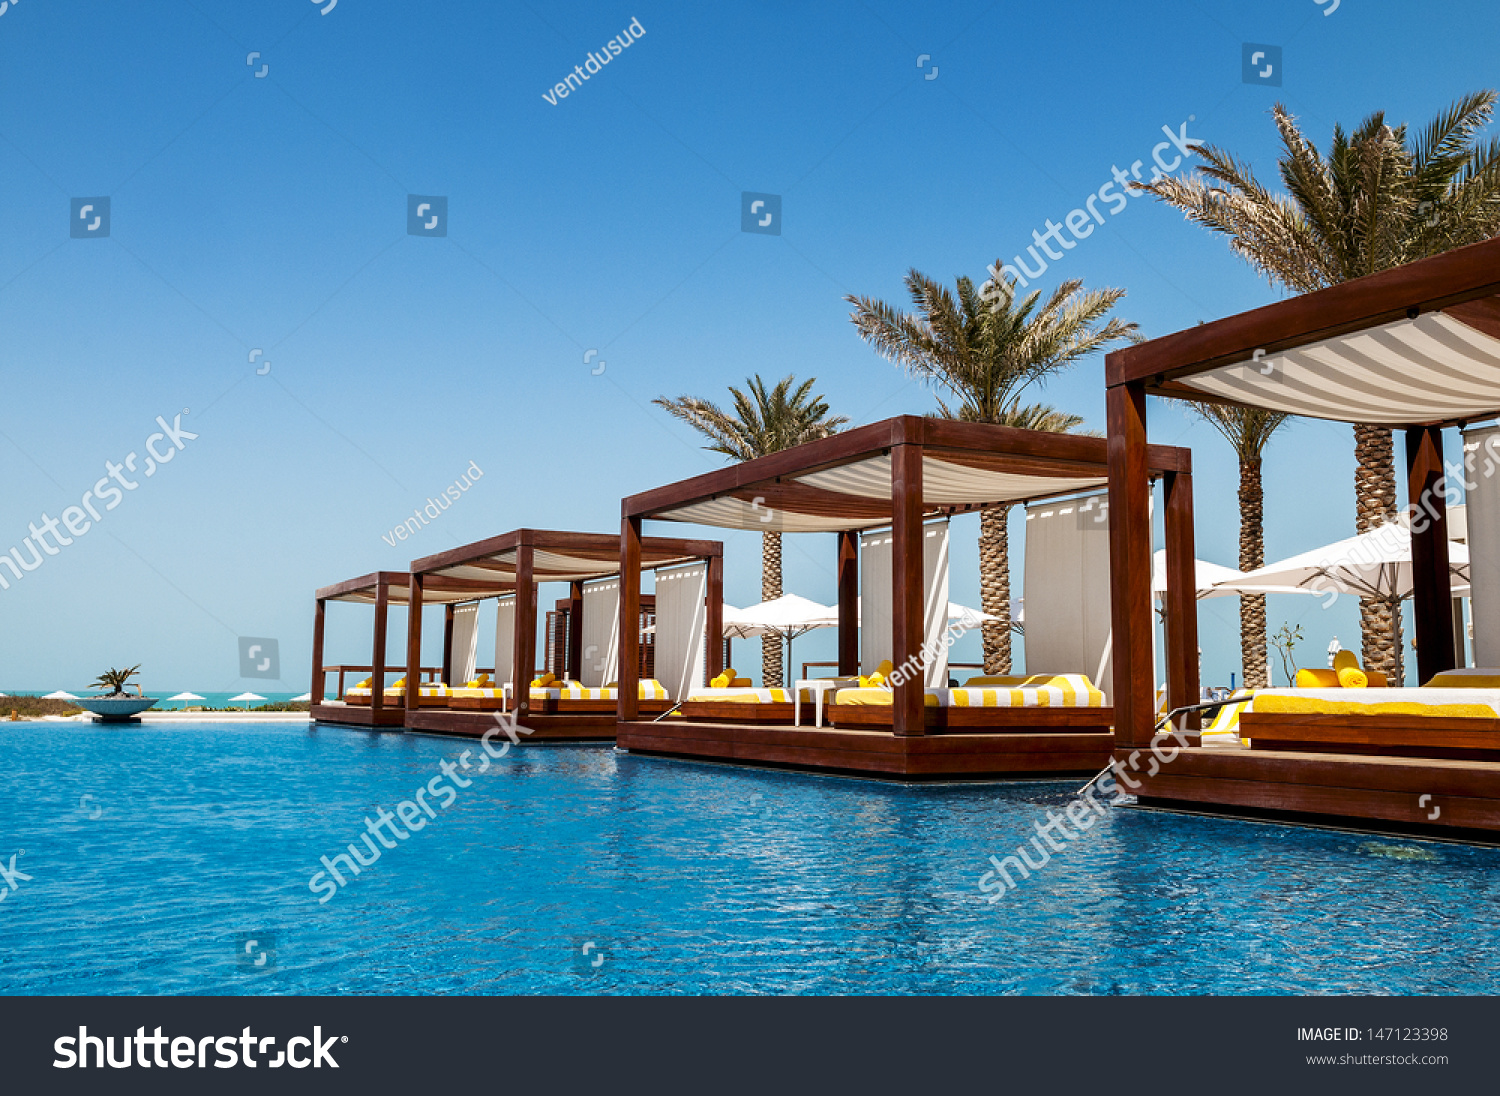 Luxury place resort and spa for vacations stock photo for Luxury places